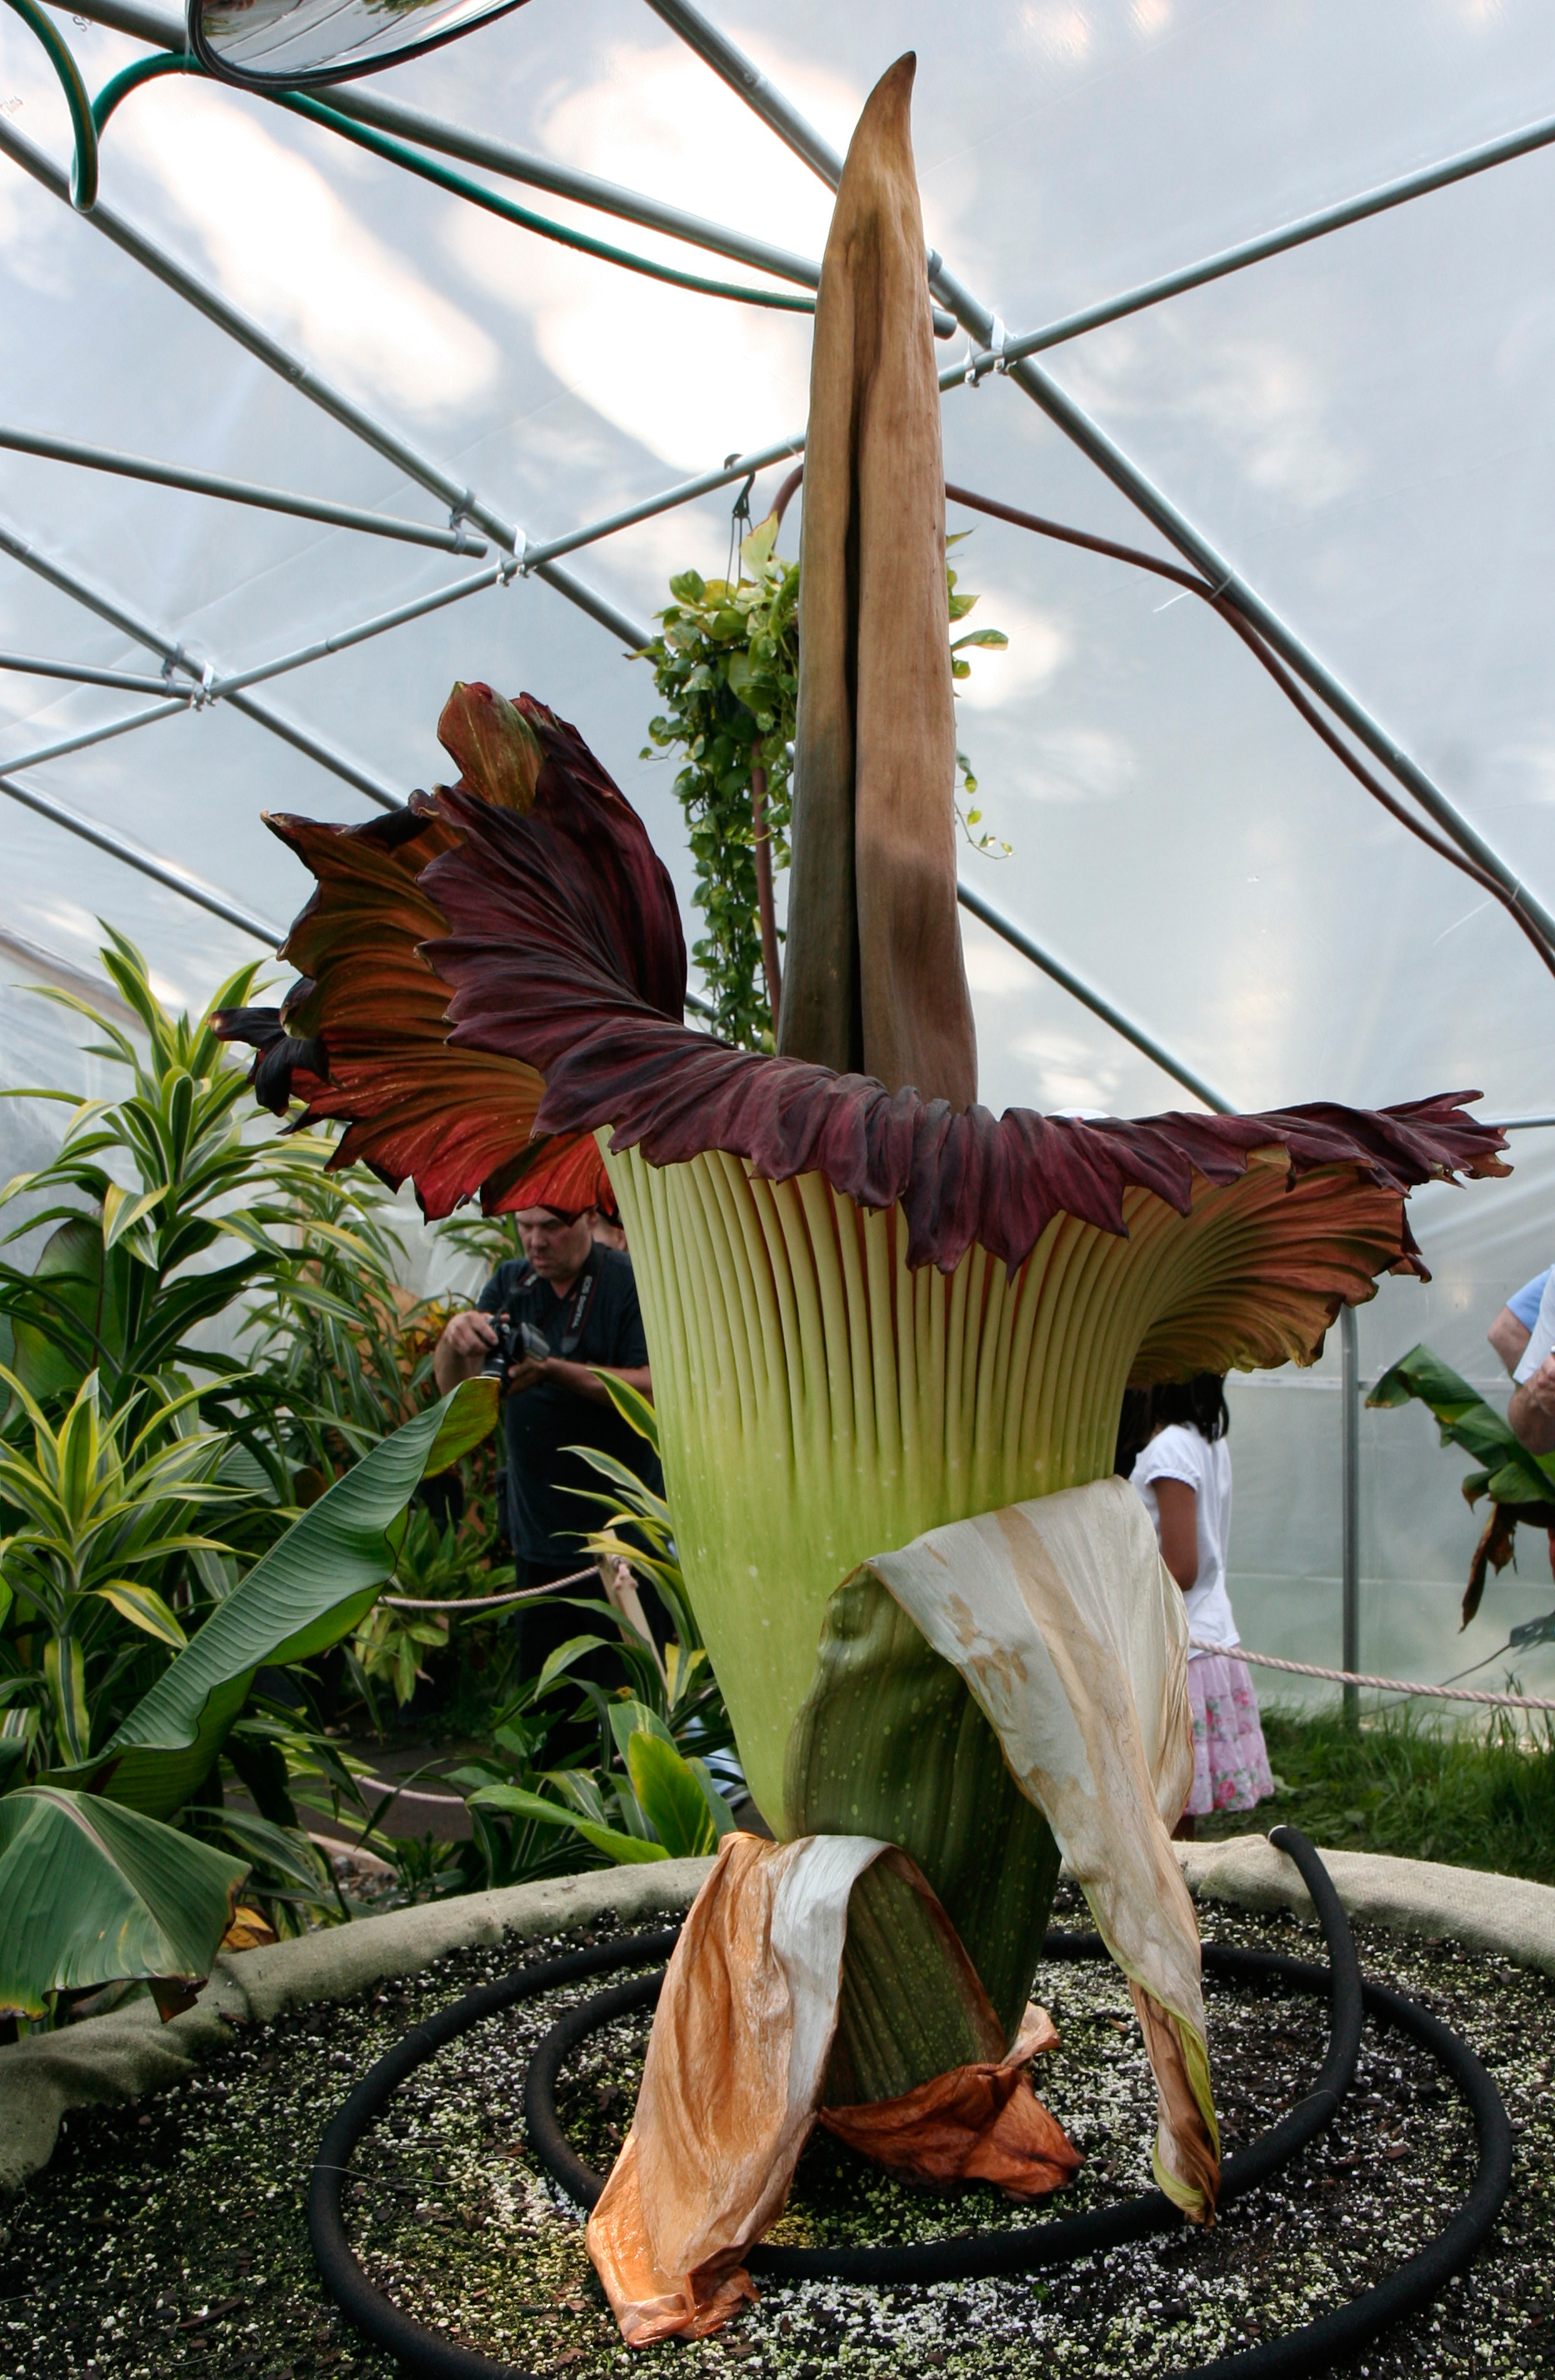 File Amorphophallus titanum morticia june 20 2012 galawebdesign Wikimed